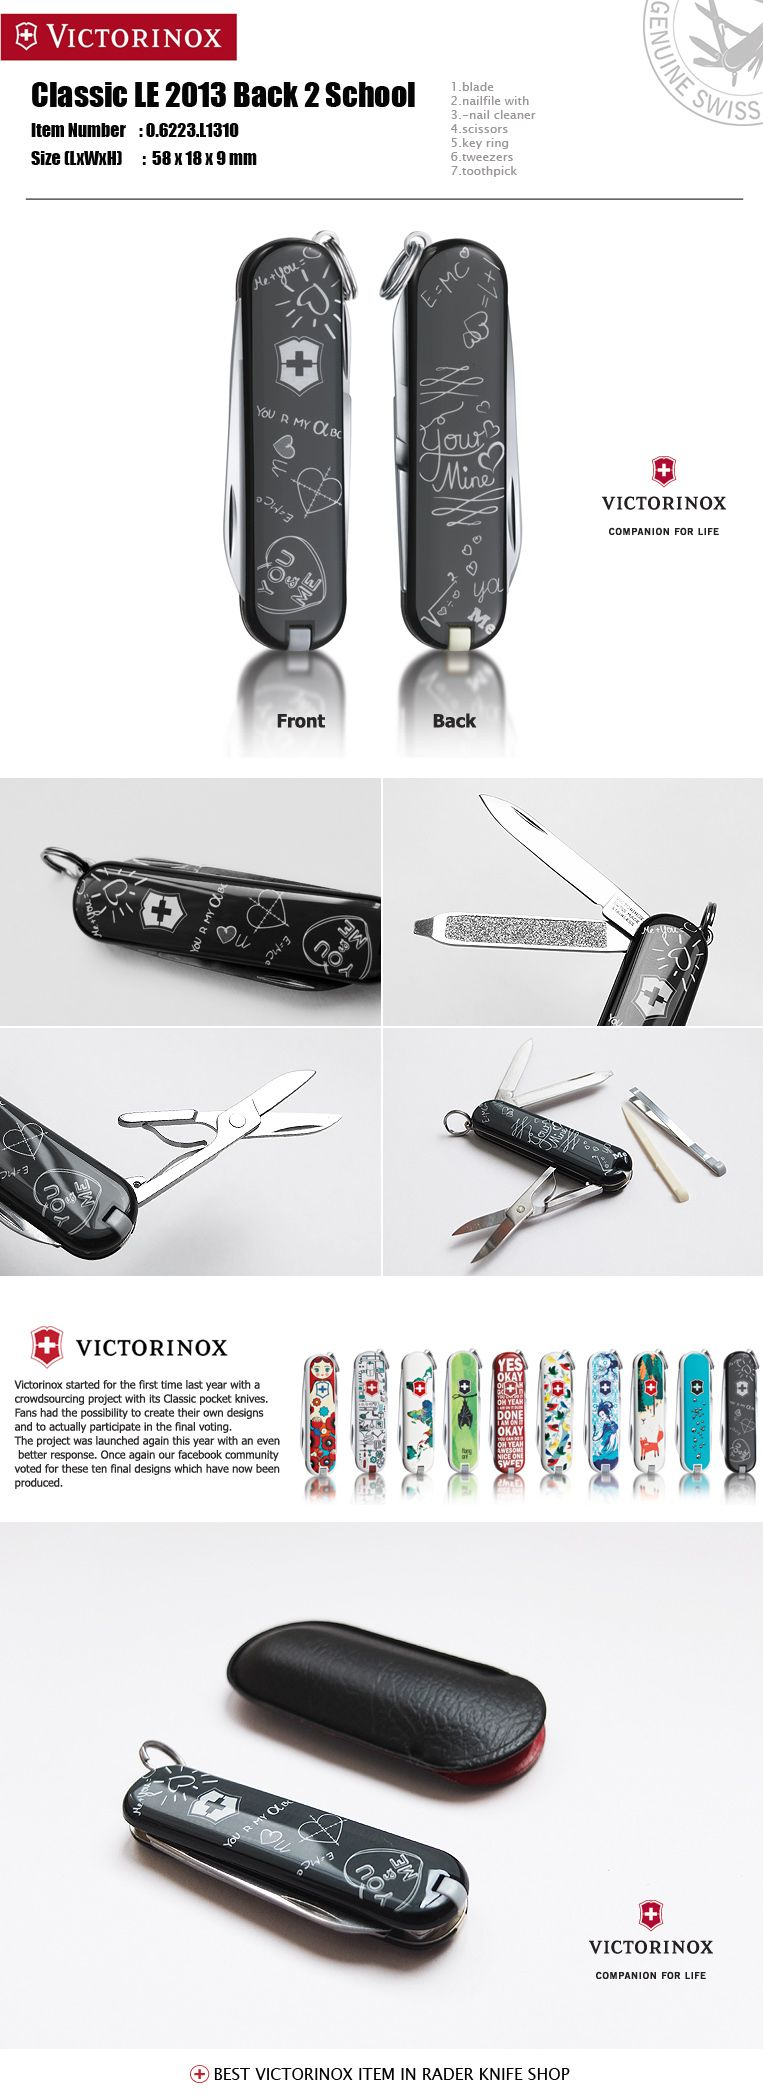 Victorinox Swiss Army Knife Classic Limited Edition 2013